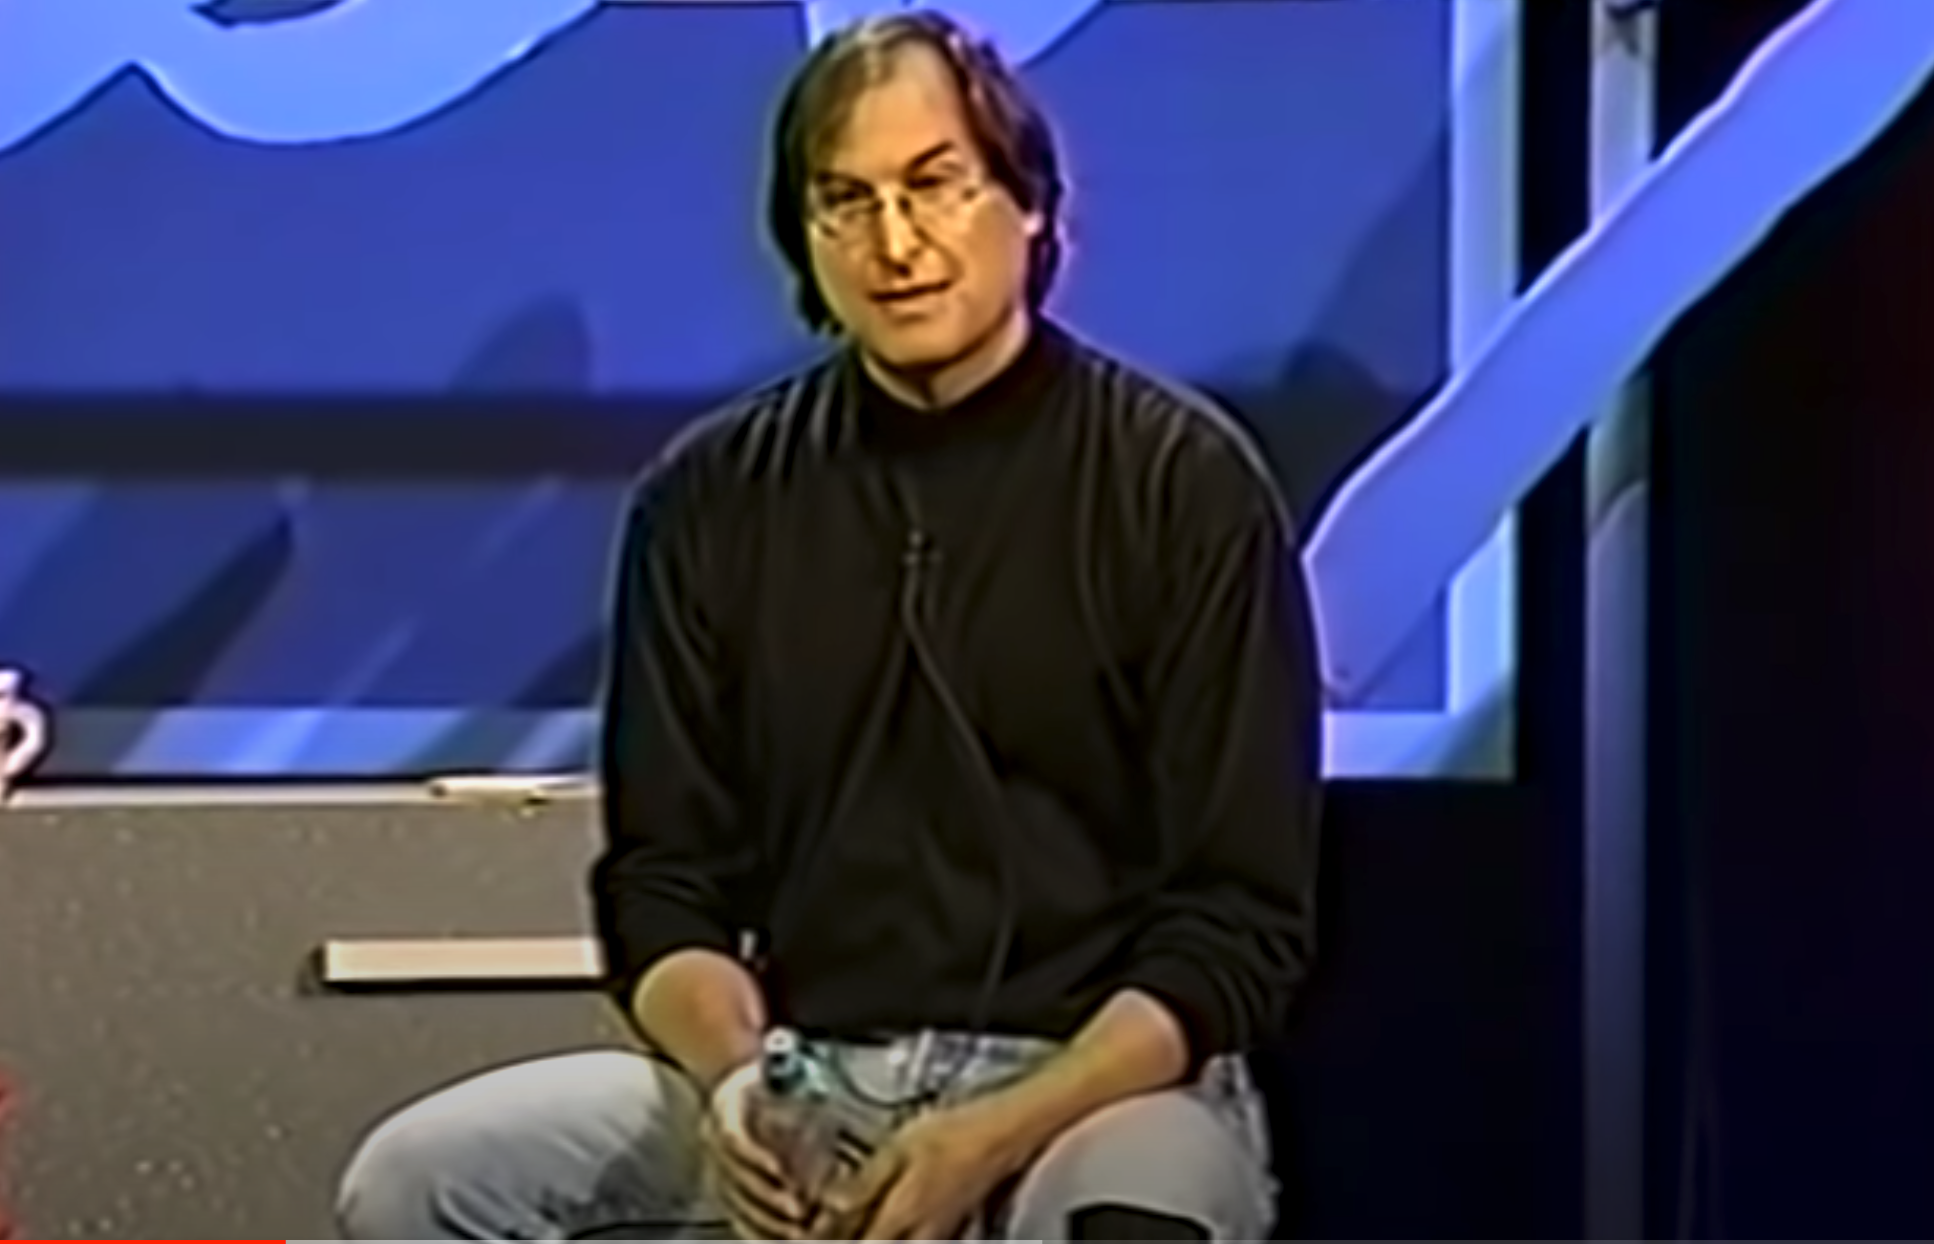 file:img/2020_08_14_what-i-learned-from-steve-jobs-response-to-tech-and-products.org_20200819_180836.png